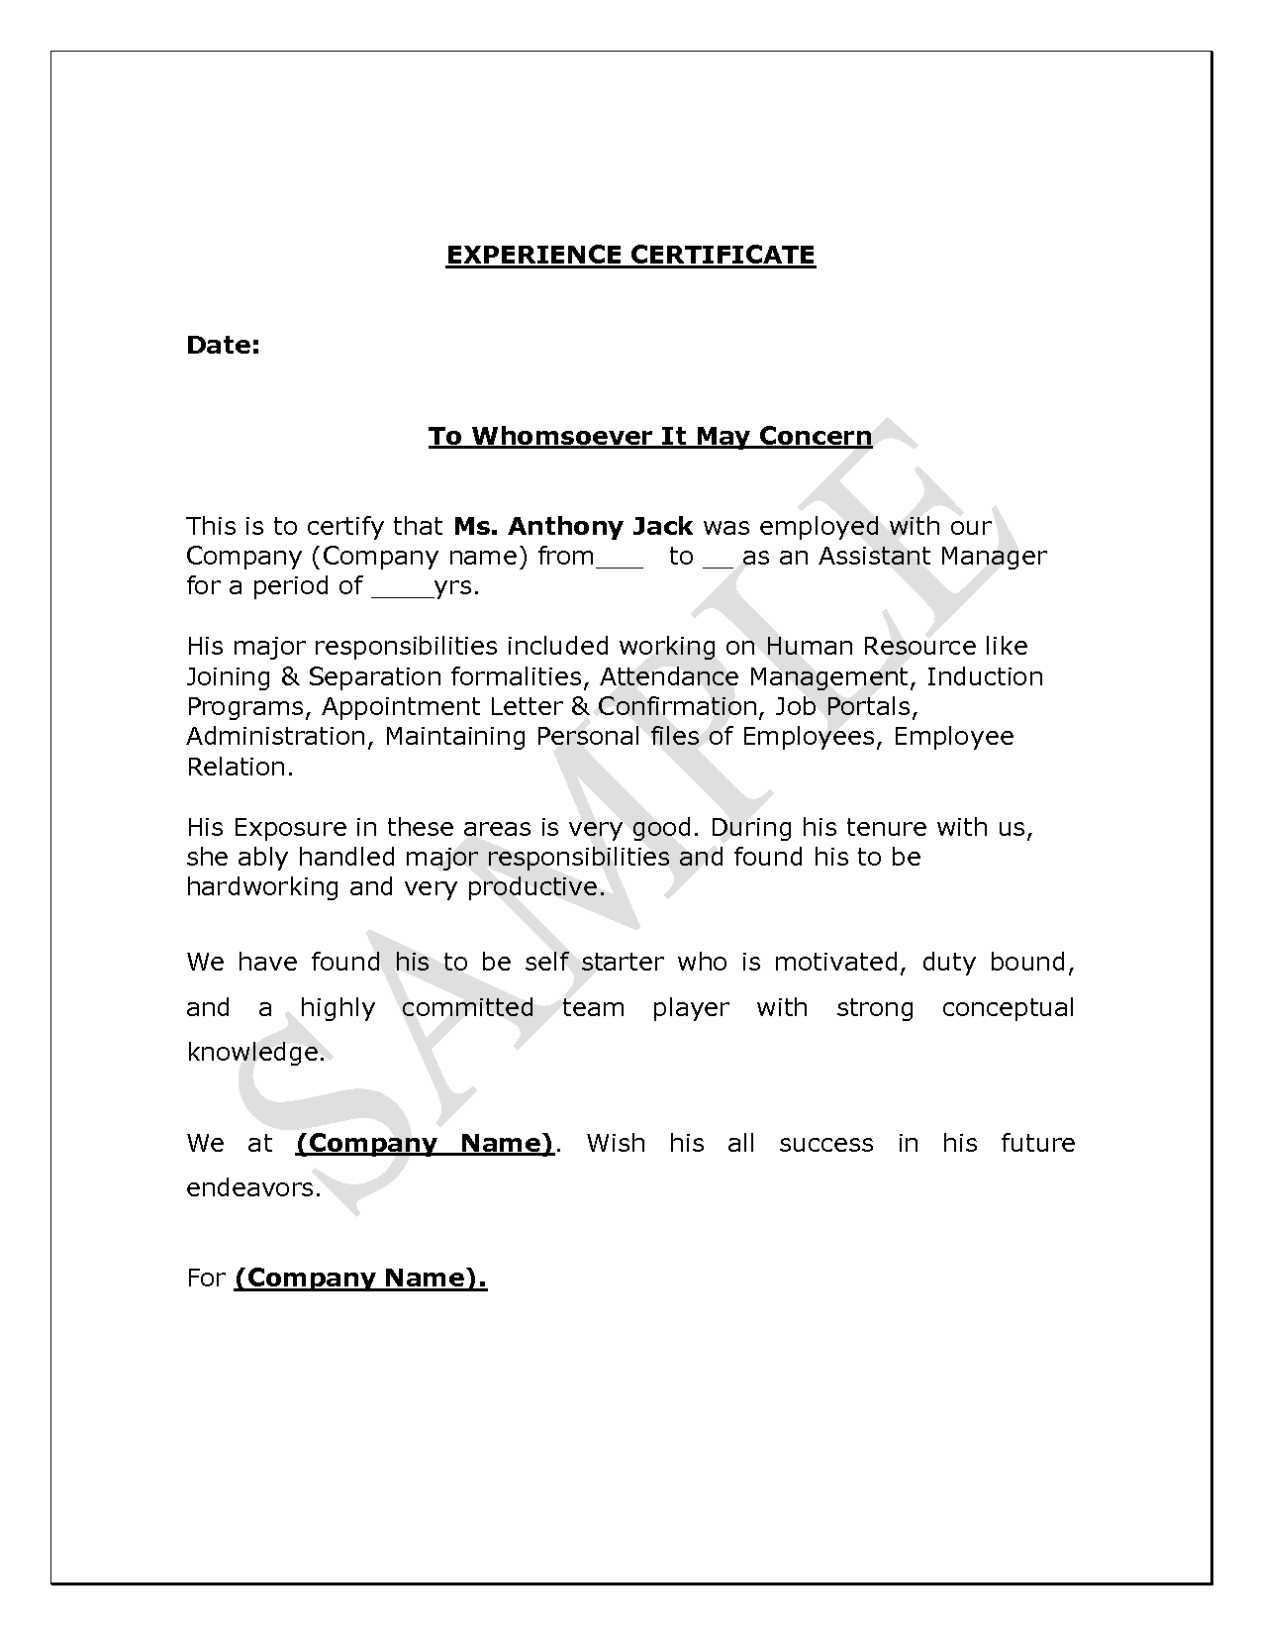 Job Certificate Format Mission Statement Outline Prompt Letter